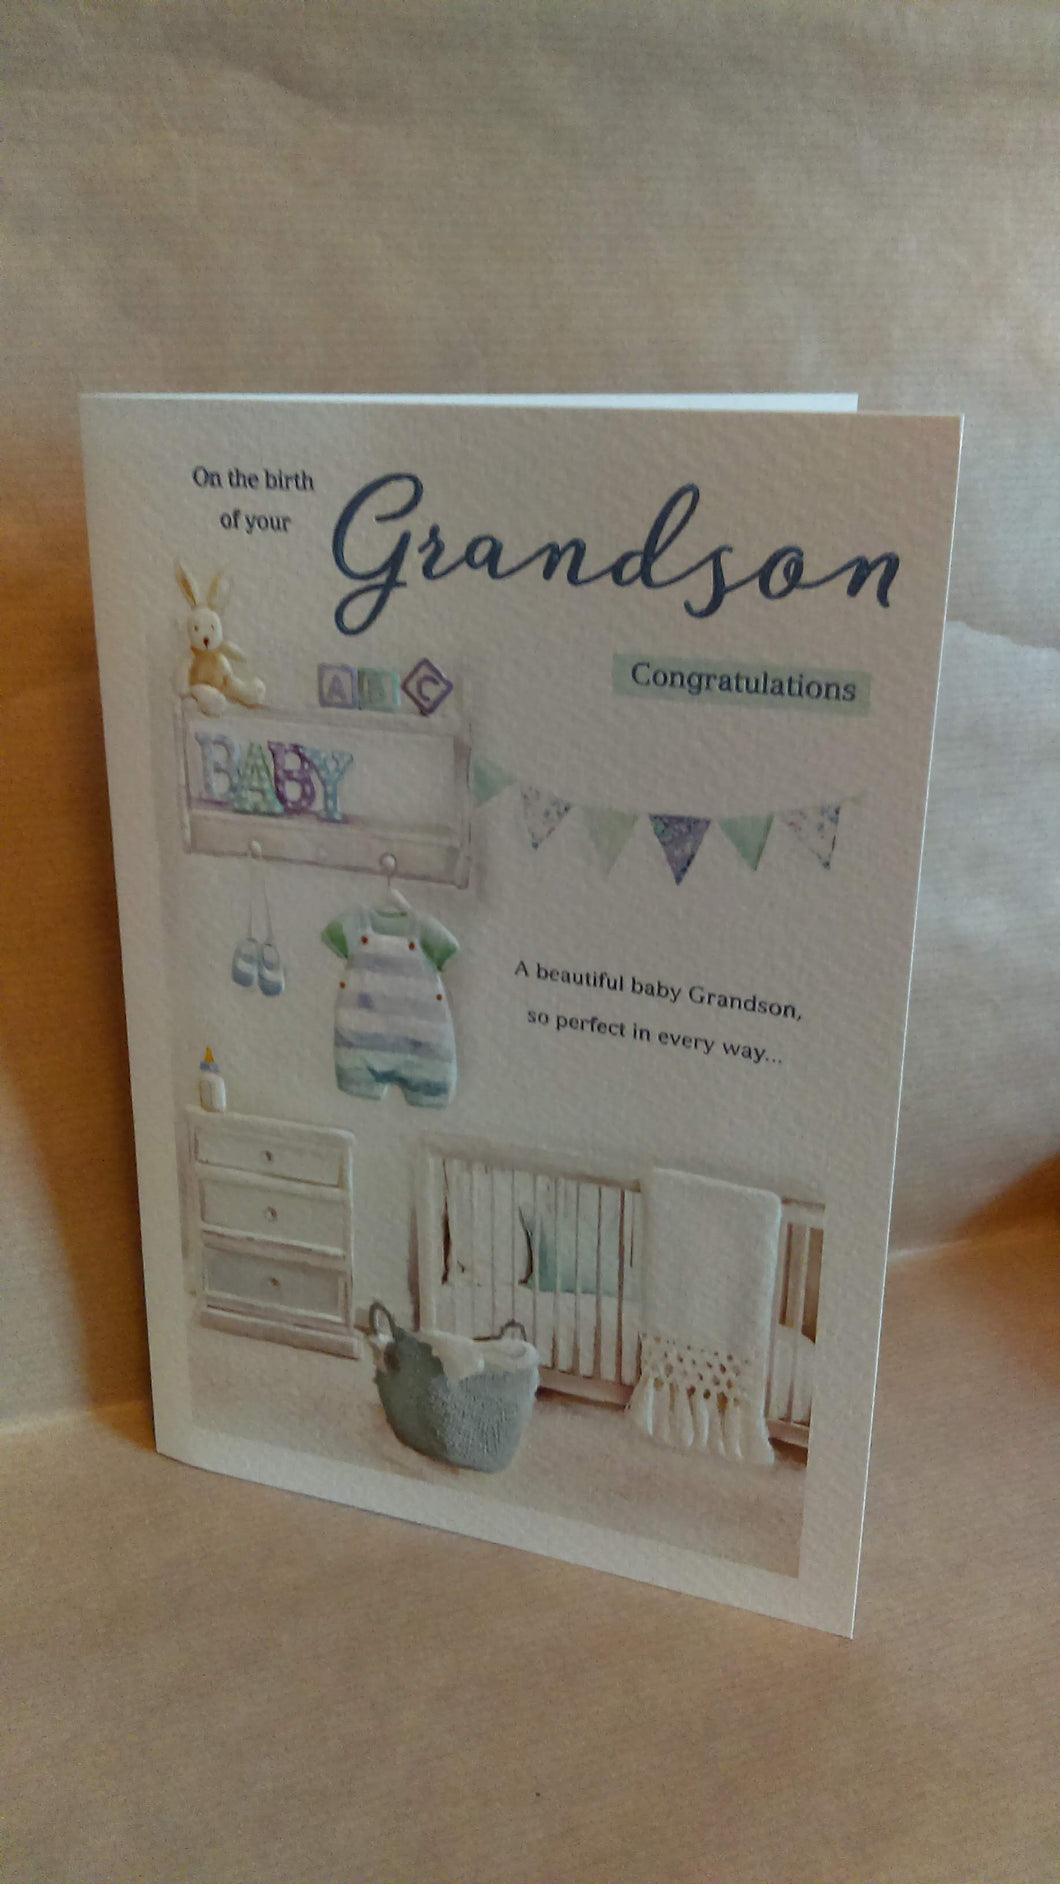 New Baby On the birth of your Grandson